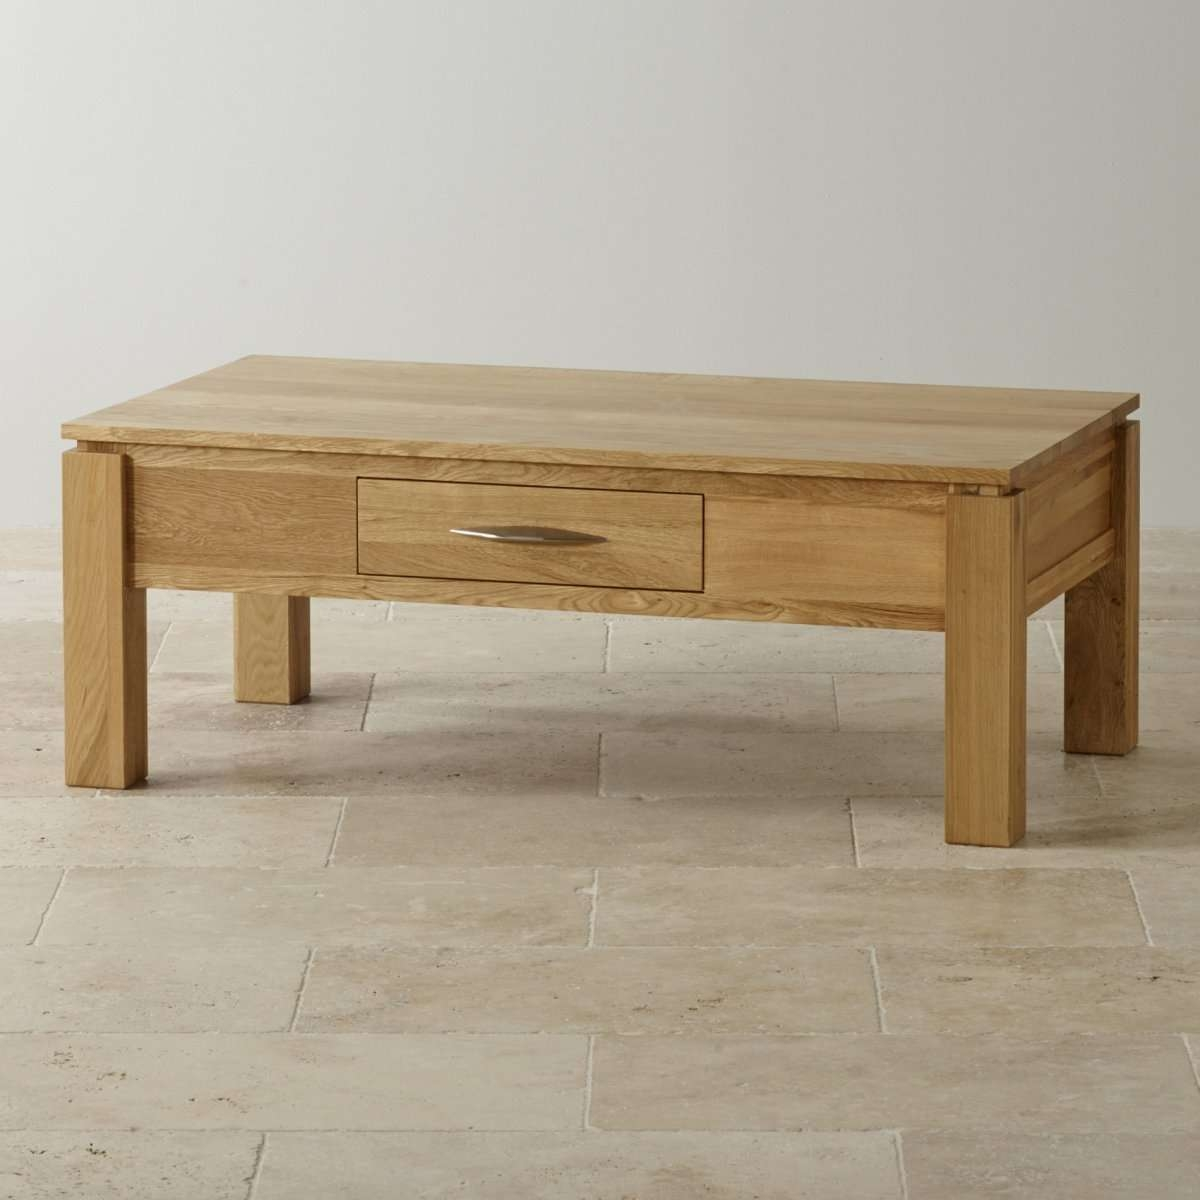 Most Current Solid Oak Coffee Table With Storage For Galway Large Coffee Table In Solid Oak (View 16 of 20)